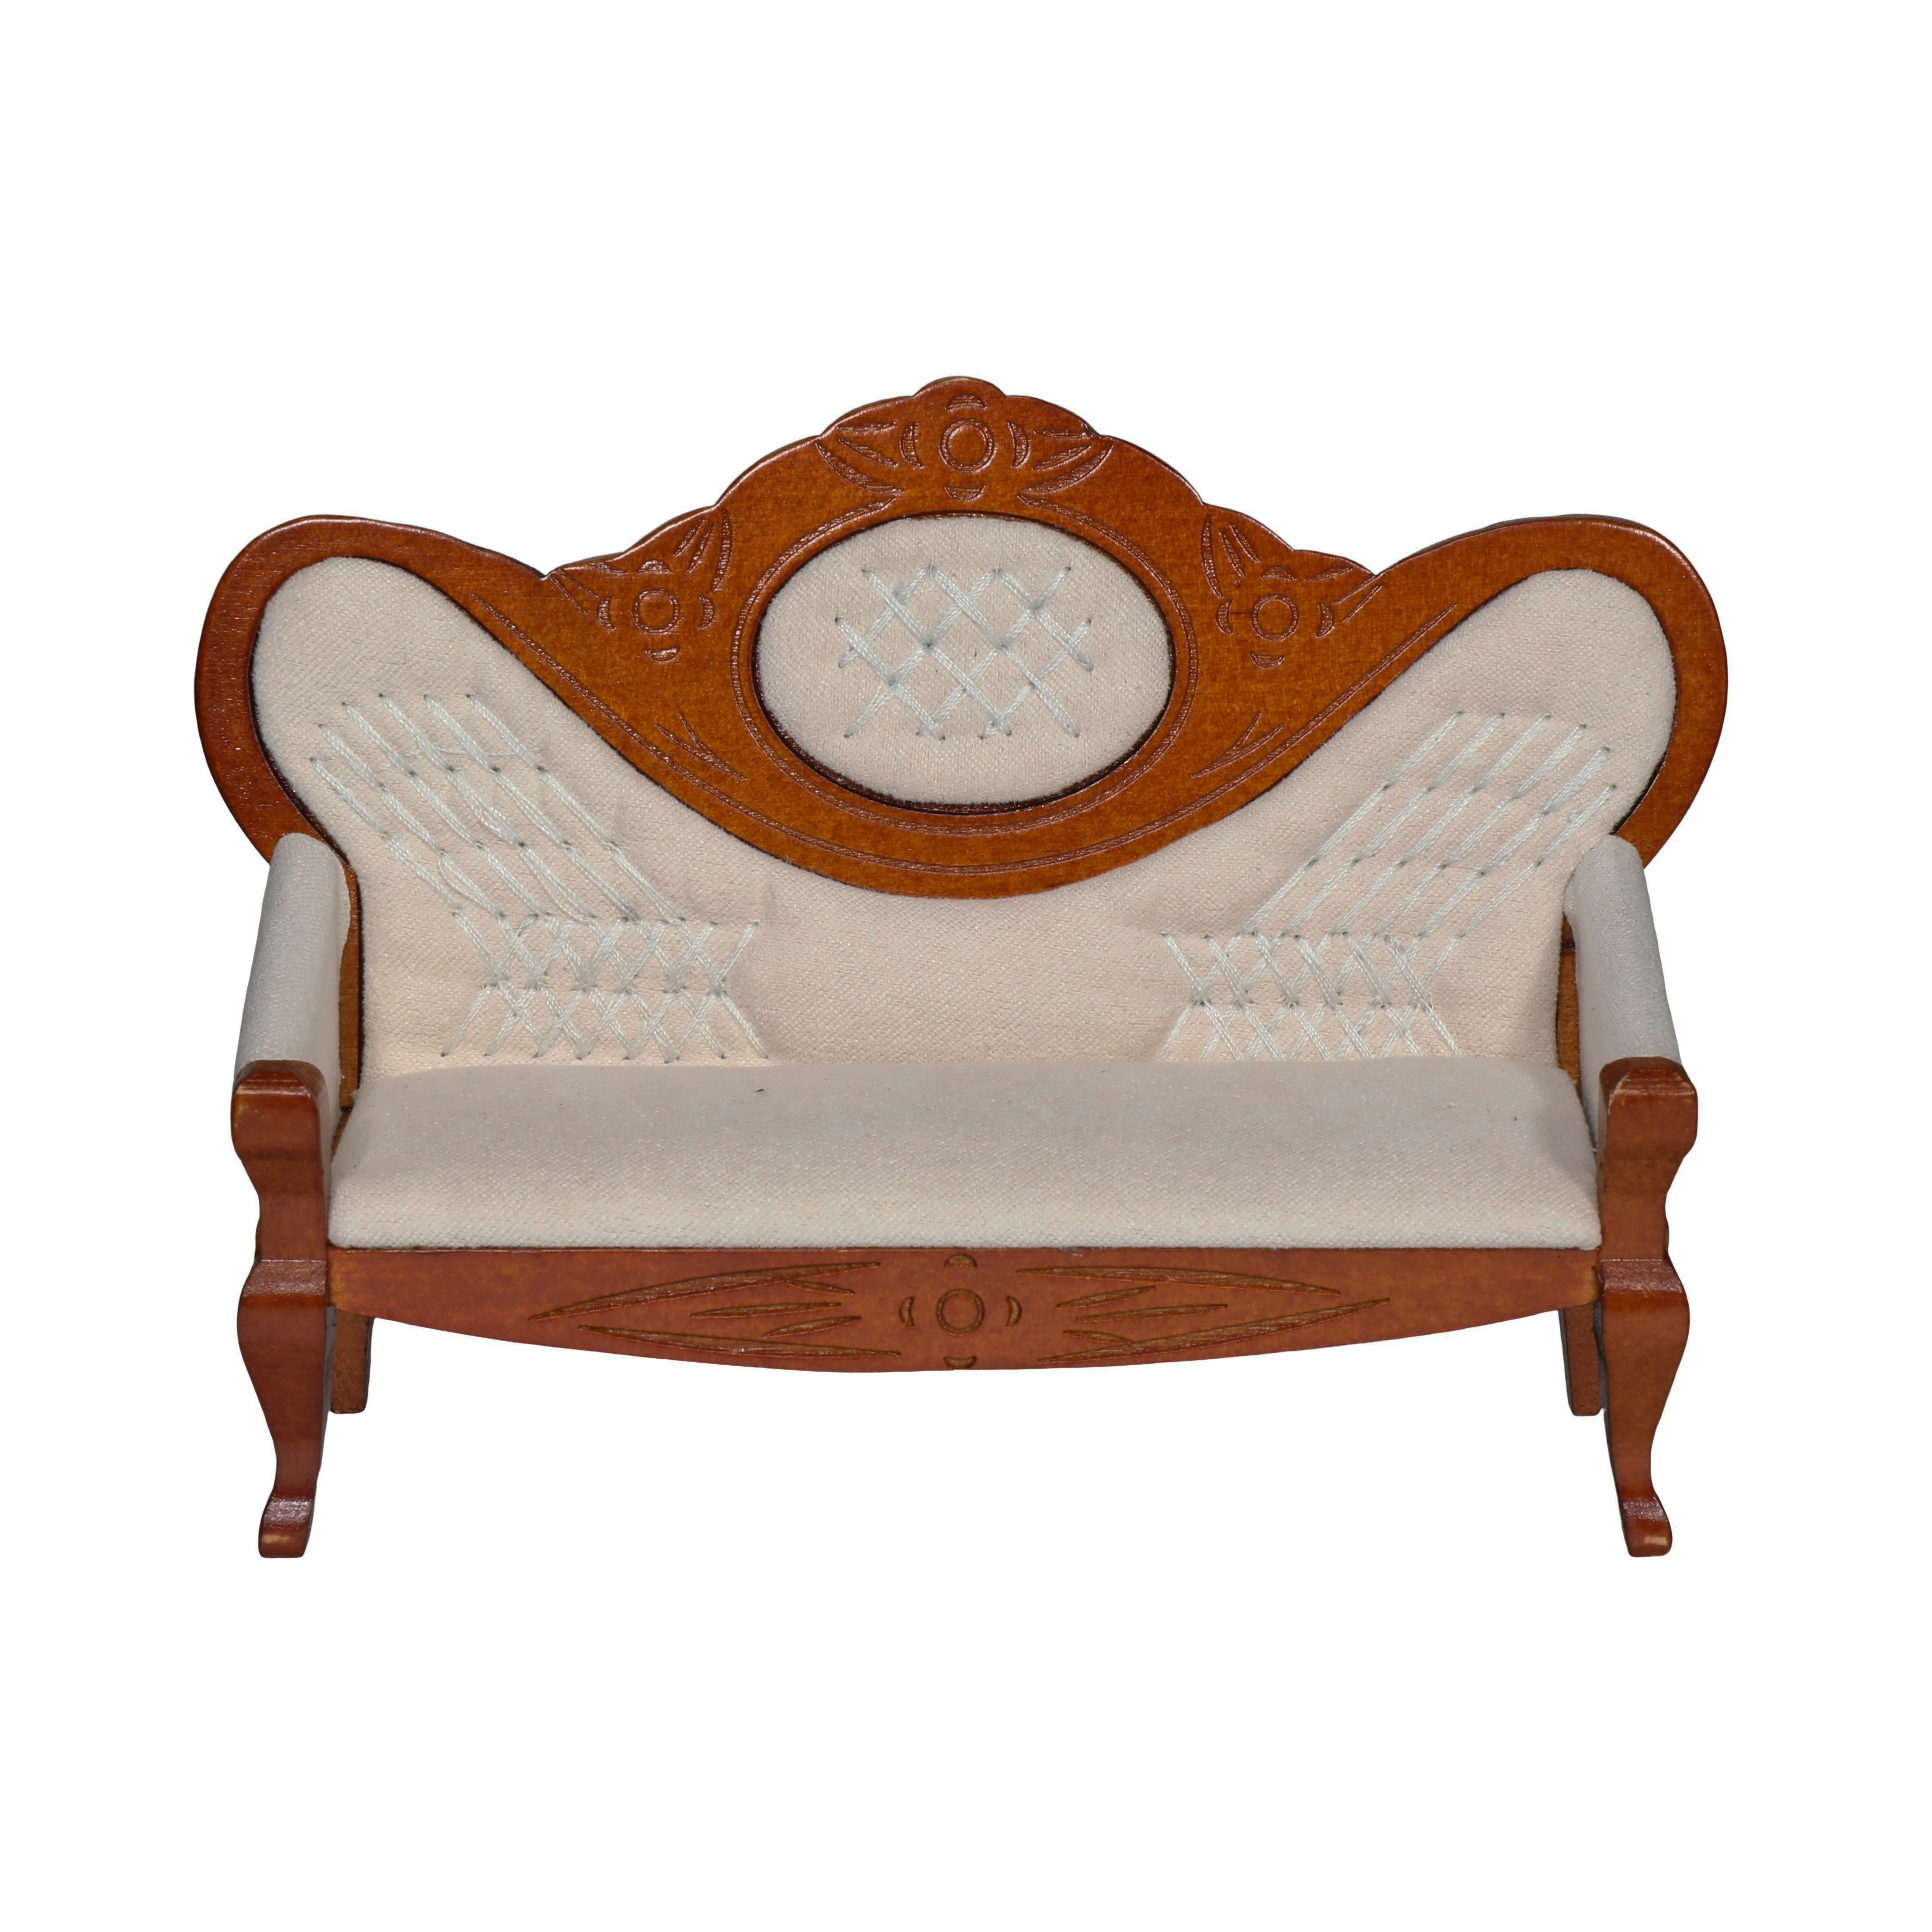 Dollhouse Accessories and Furniture Sets 1:12 Scale Miniature Doll House Sofa